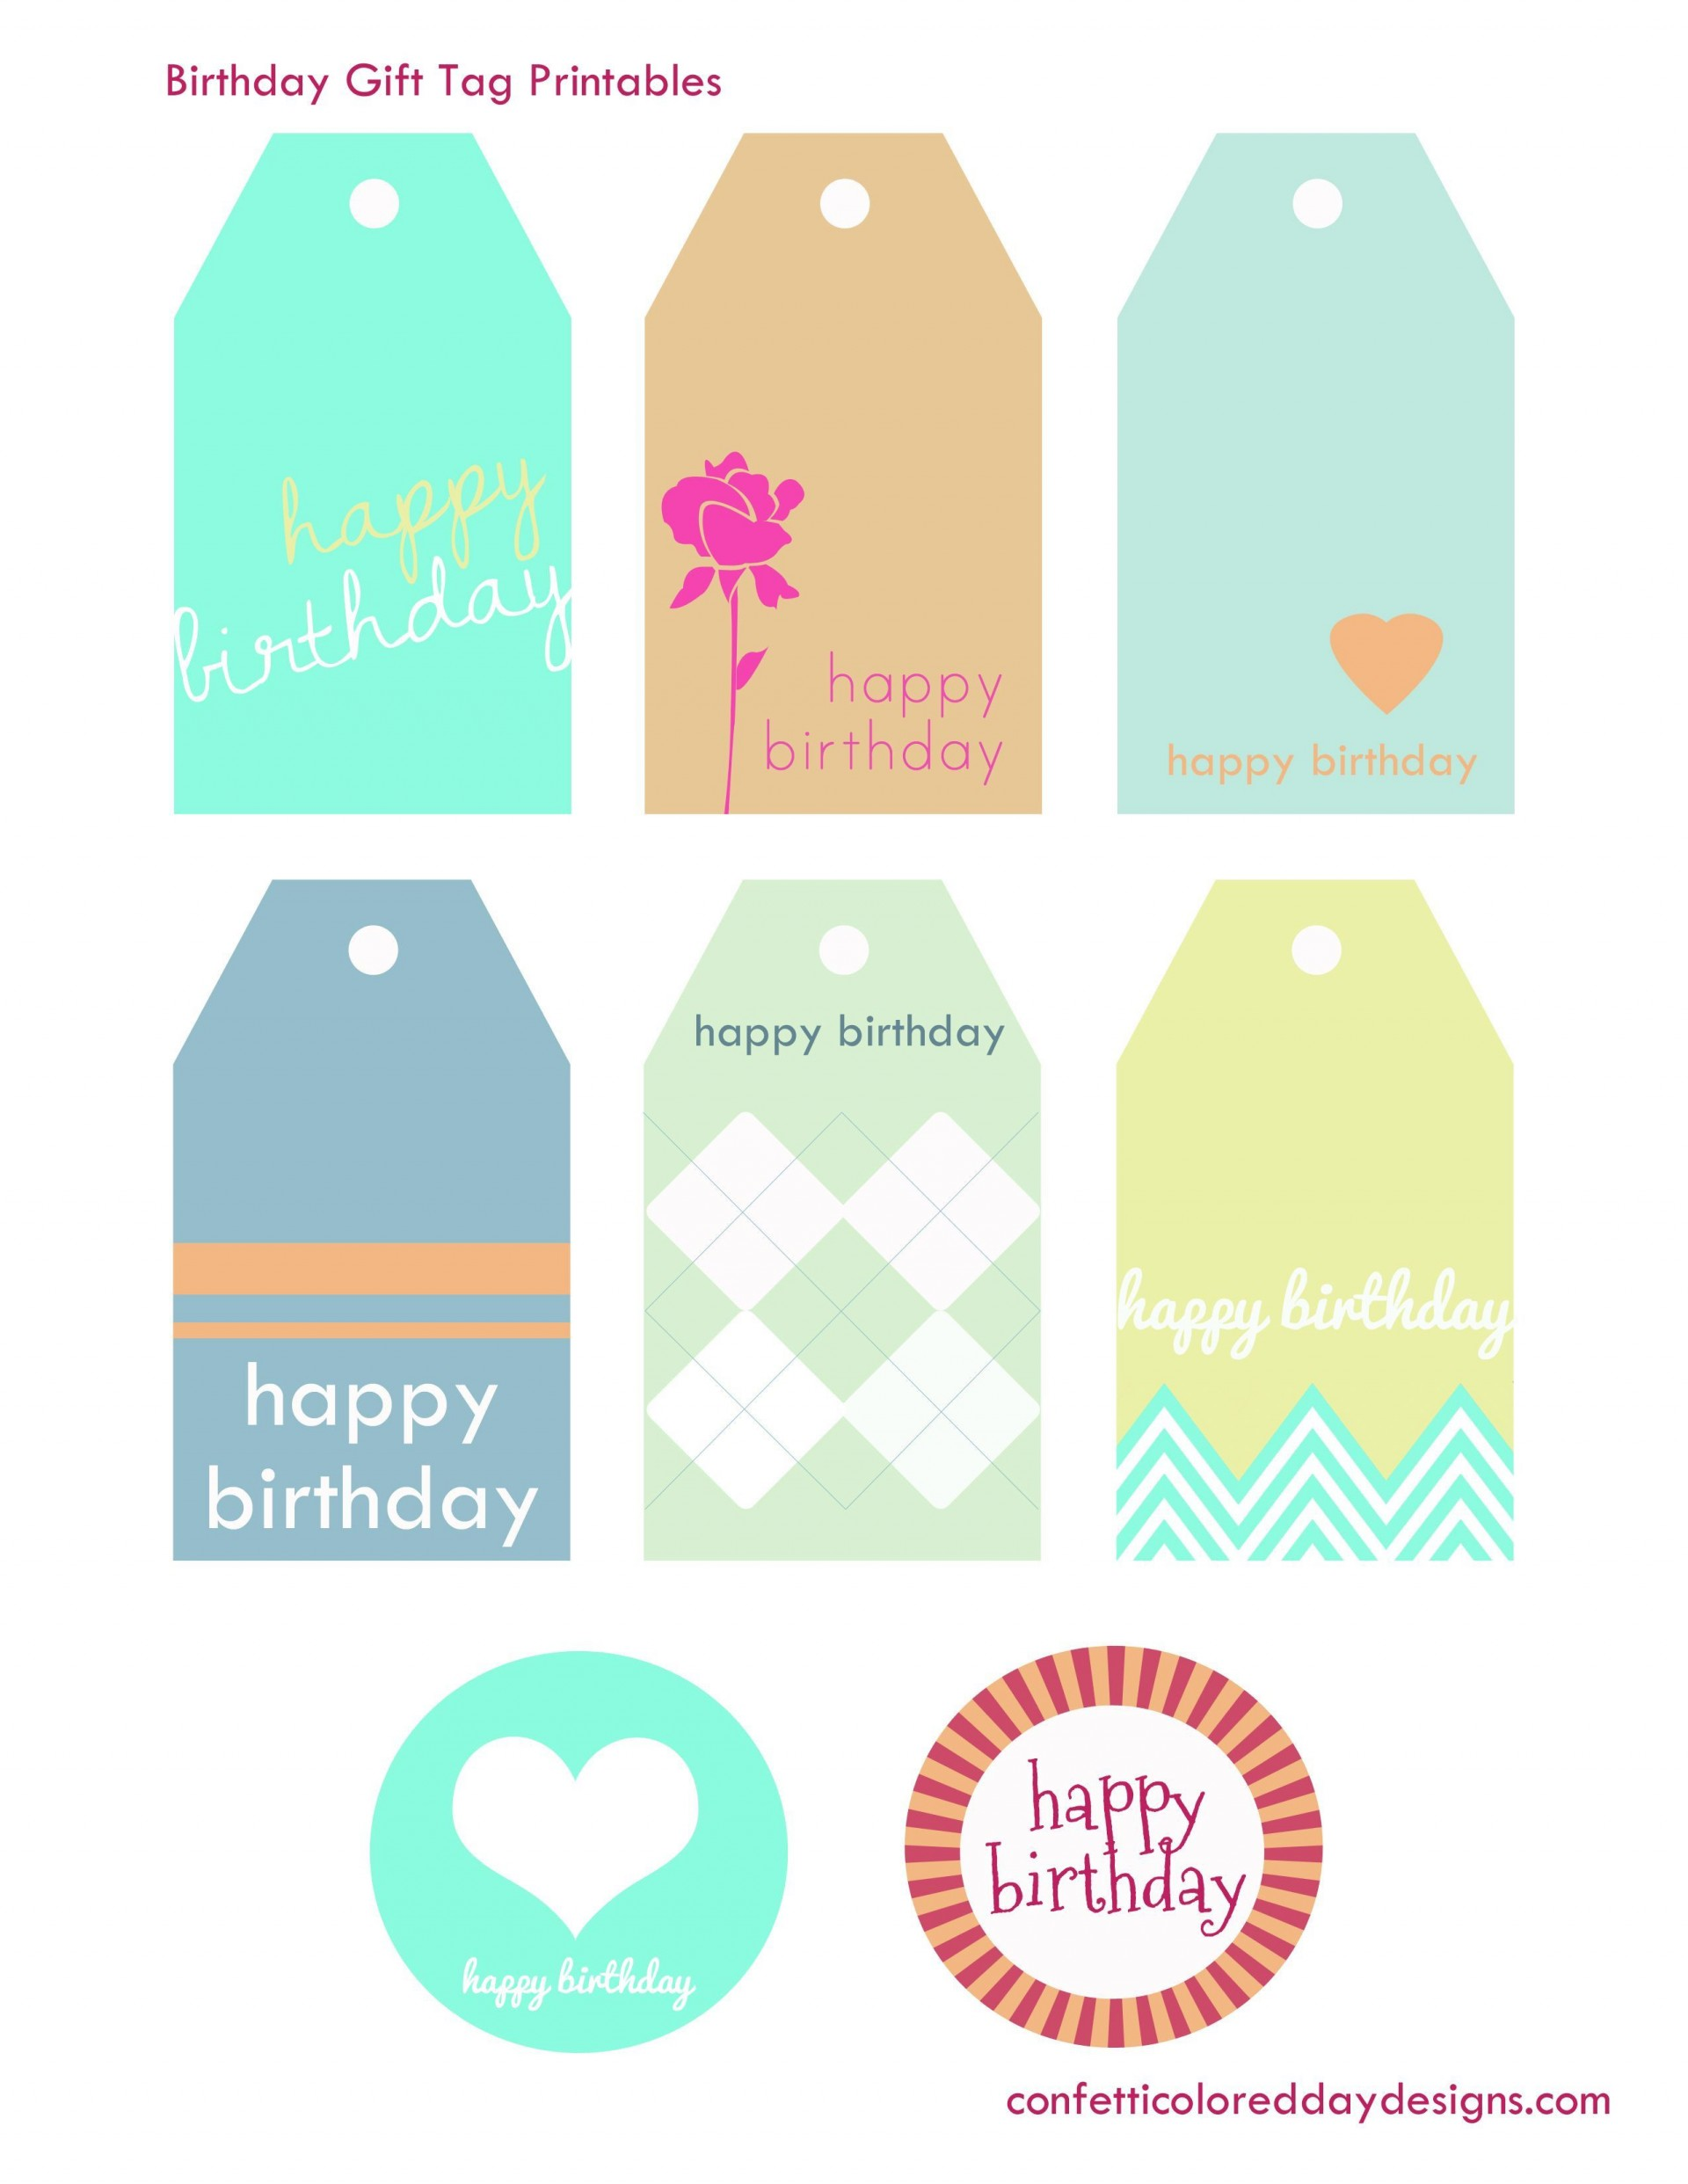 005 Fascinating Free Printable Thank You Gift Tag Template Photo  Templates1920